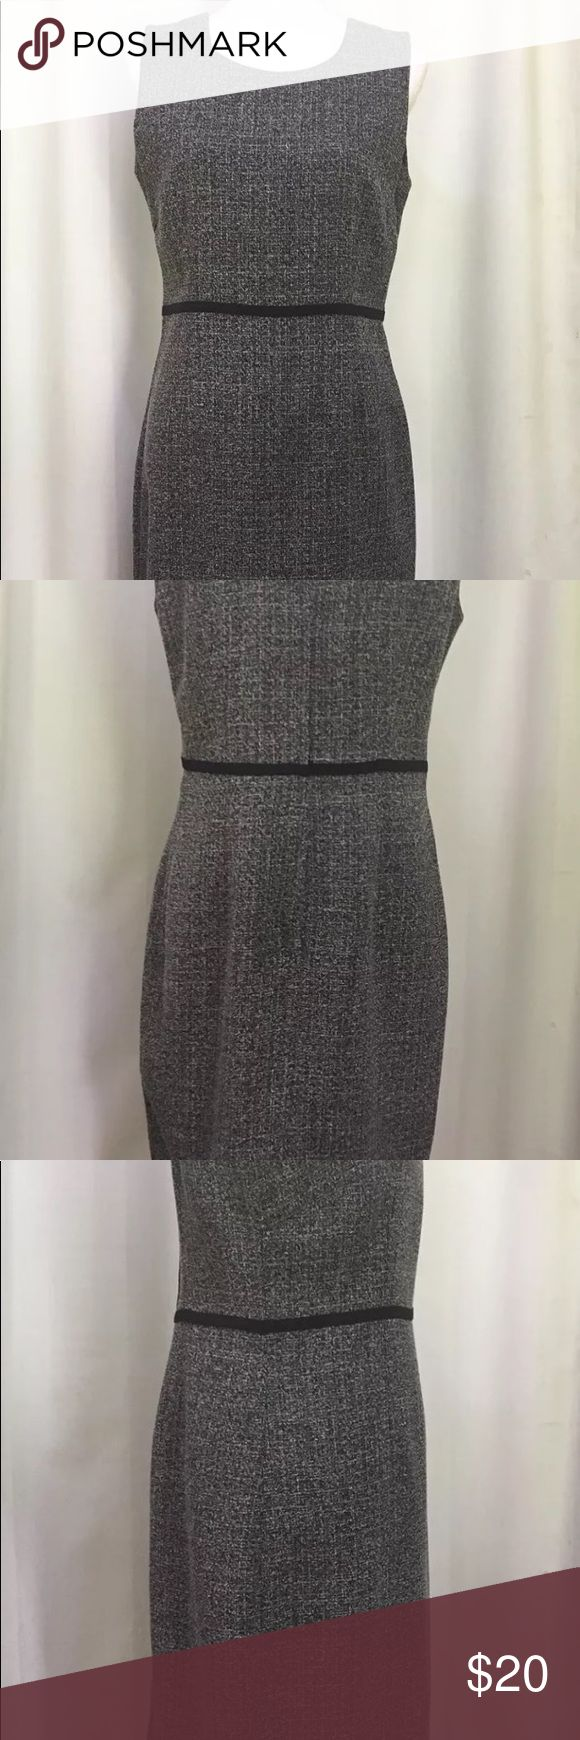 """Julian Taylor Sleeveless Dress Size 8 Gray Black Such a great dress!! Wear alone or with a sweater, blazer or scarf , flats or heels :)  Great for the office meeting or a day of shopping.  It is barley worn, like new, condition  Zips up back  Size 8,          38"""" inches long  See photos :) Julian Taylor Dresses Midi"""